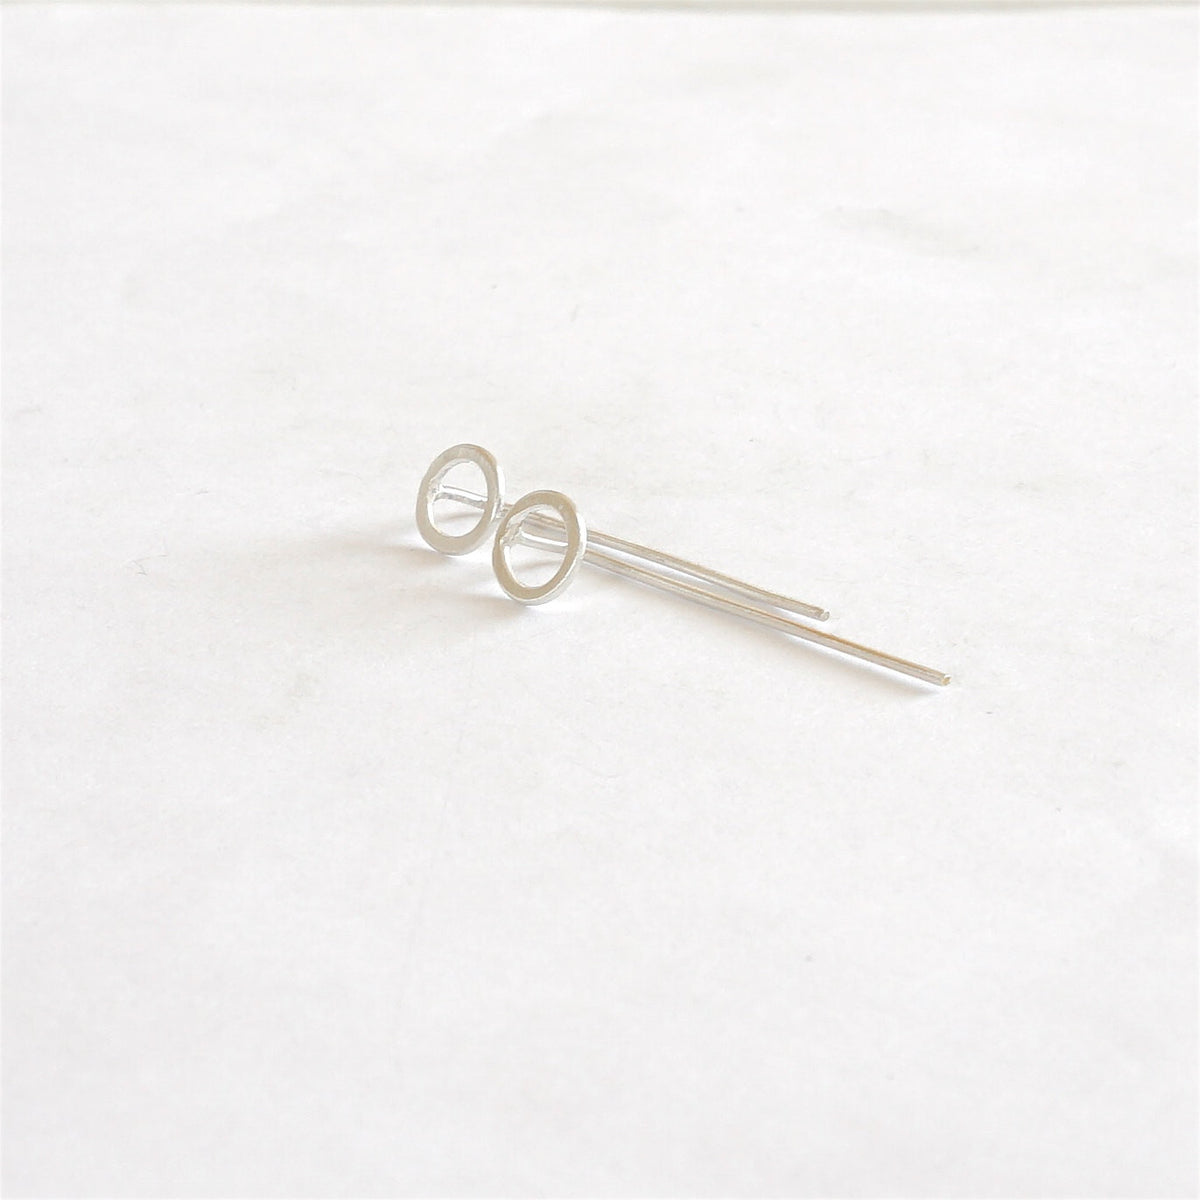 Sophisticated and Tasteful, Hand-Crafted Open Circle Threader Earring - 0214 - Virginia Wynne Designs